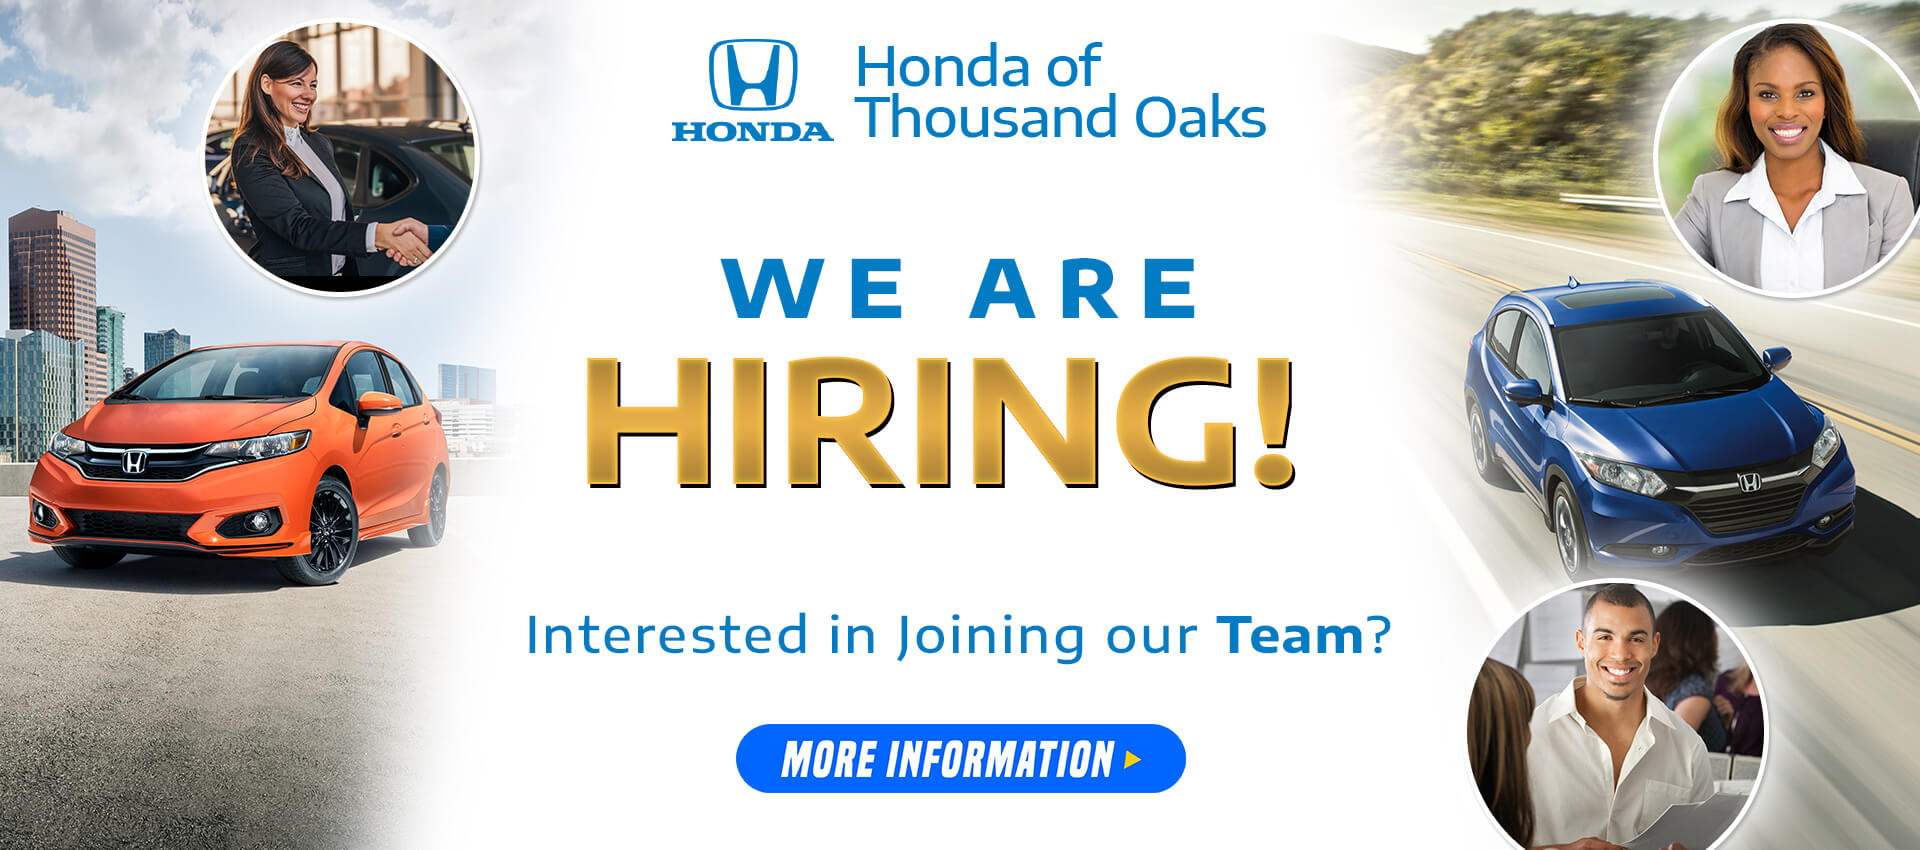 Awesome Honda Job Opportunities